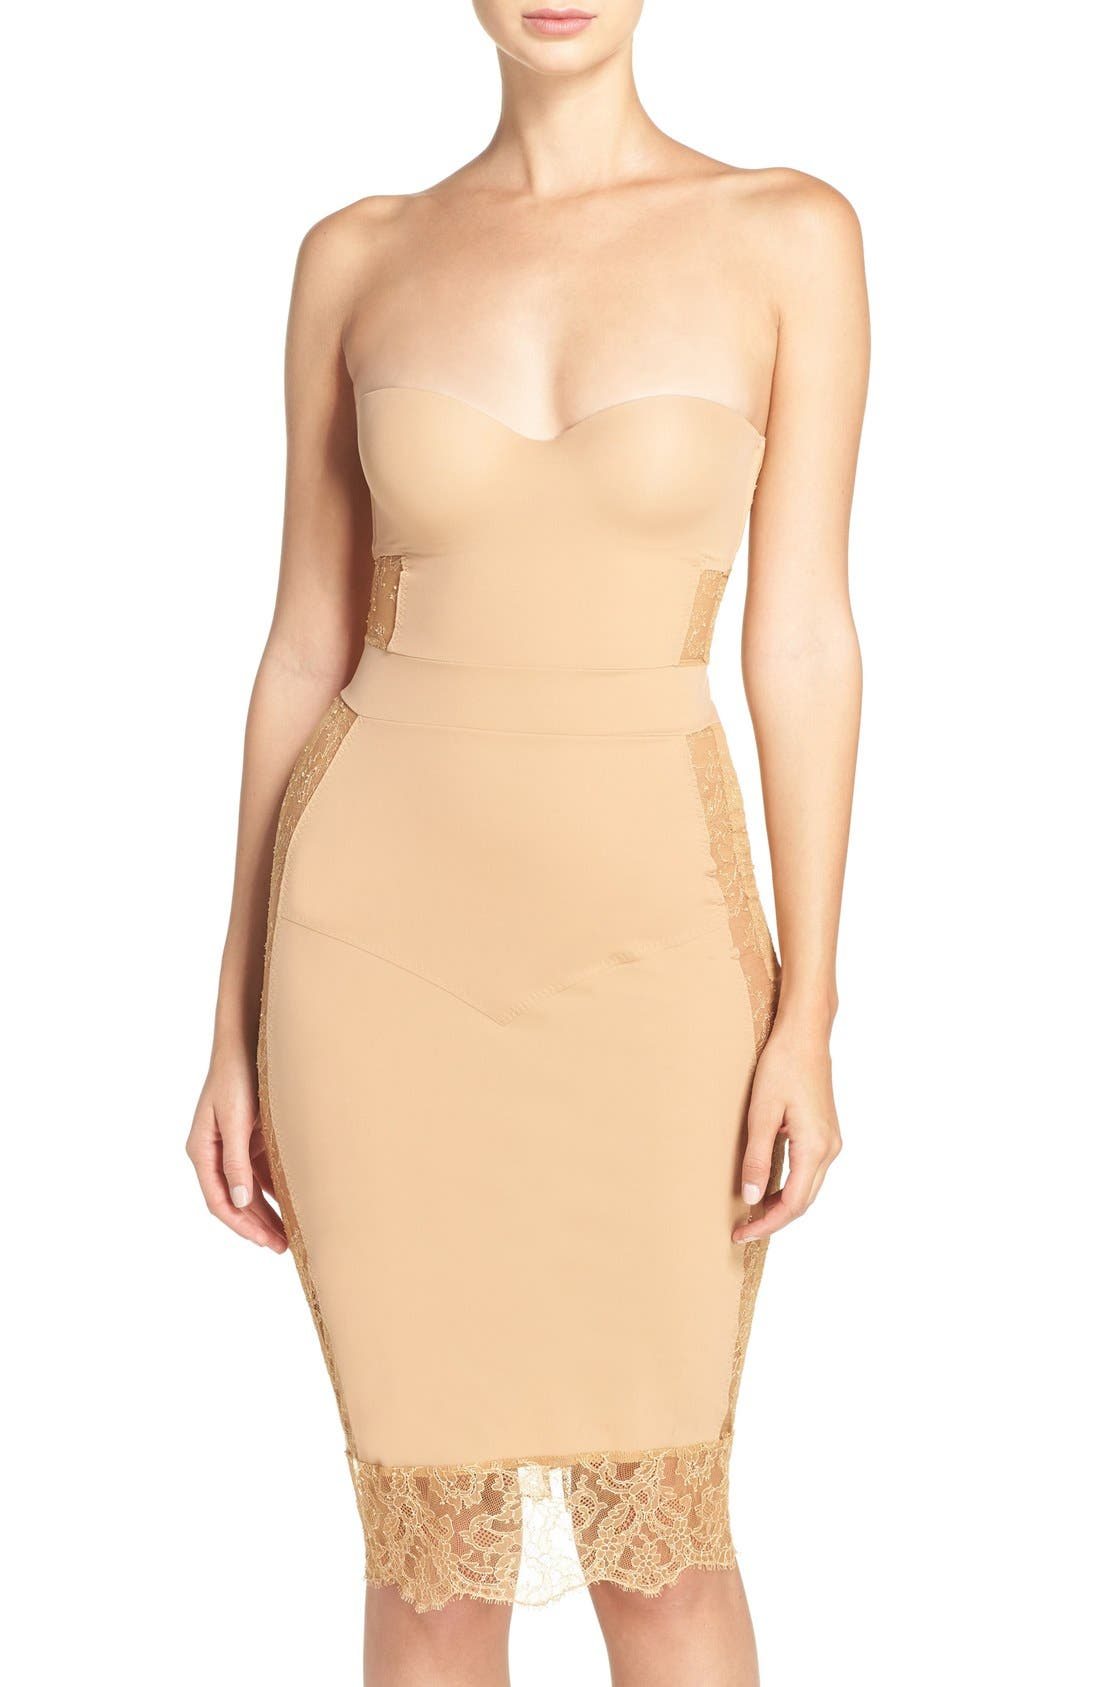 La Perla 'Allure' Convertible Underwire Shaping Slip